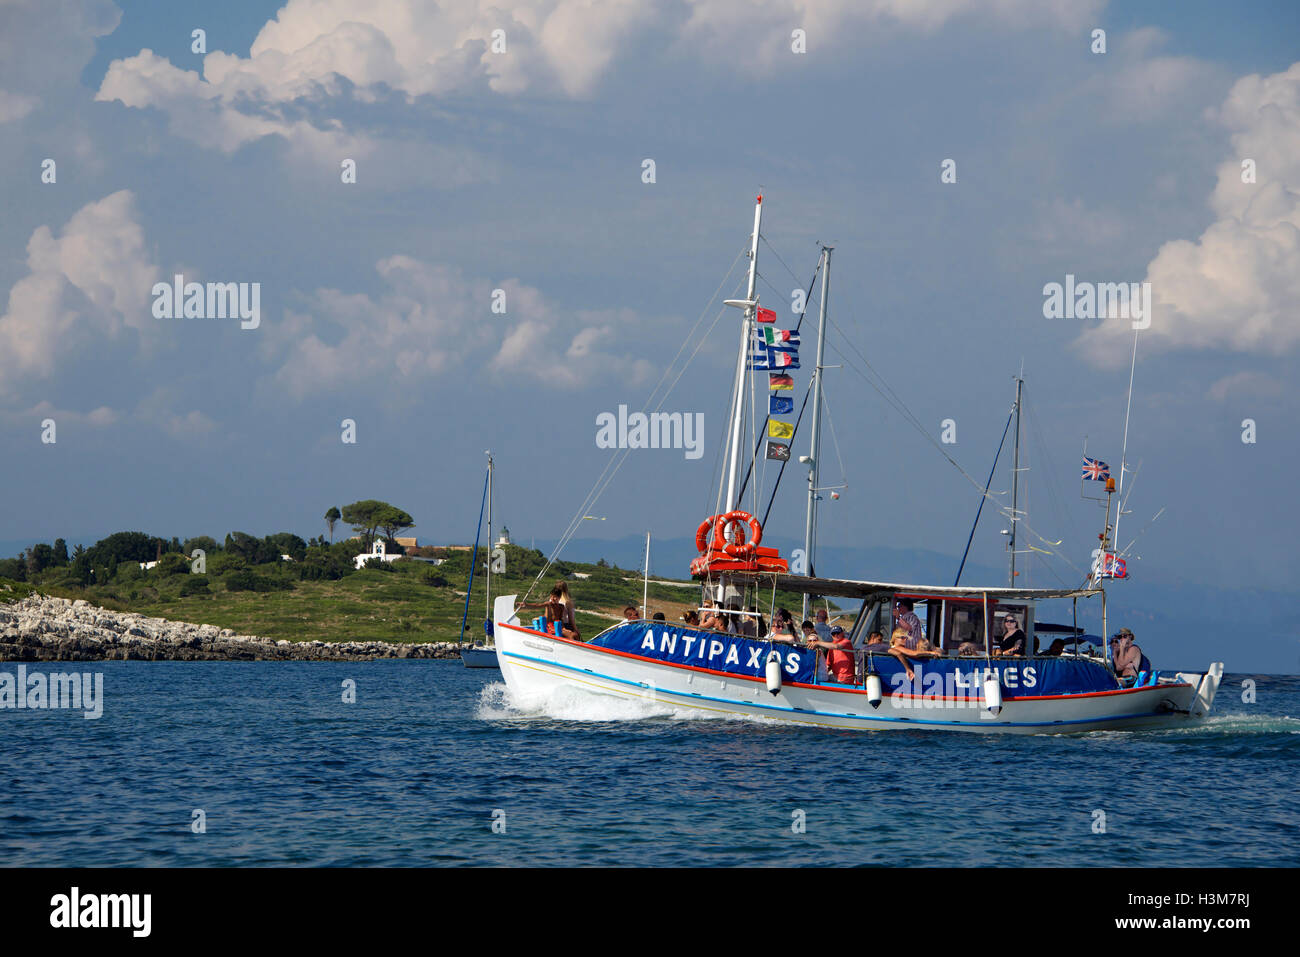 Antipaxos ferry Gaios Harbour Paxos Ionian Islands Greece - Stock Image